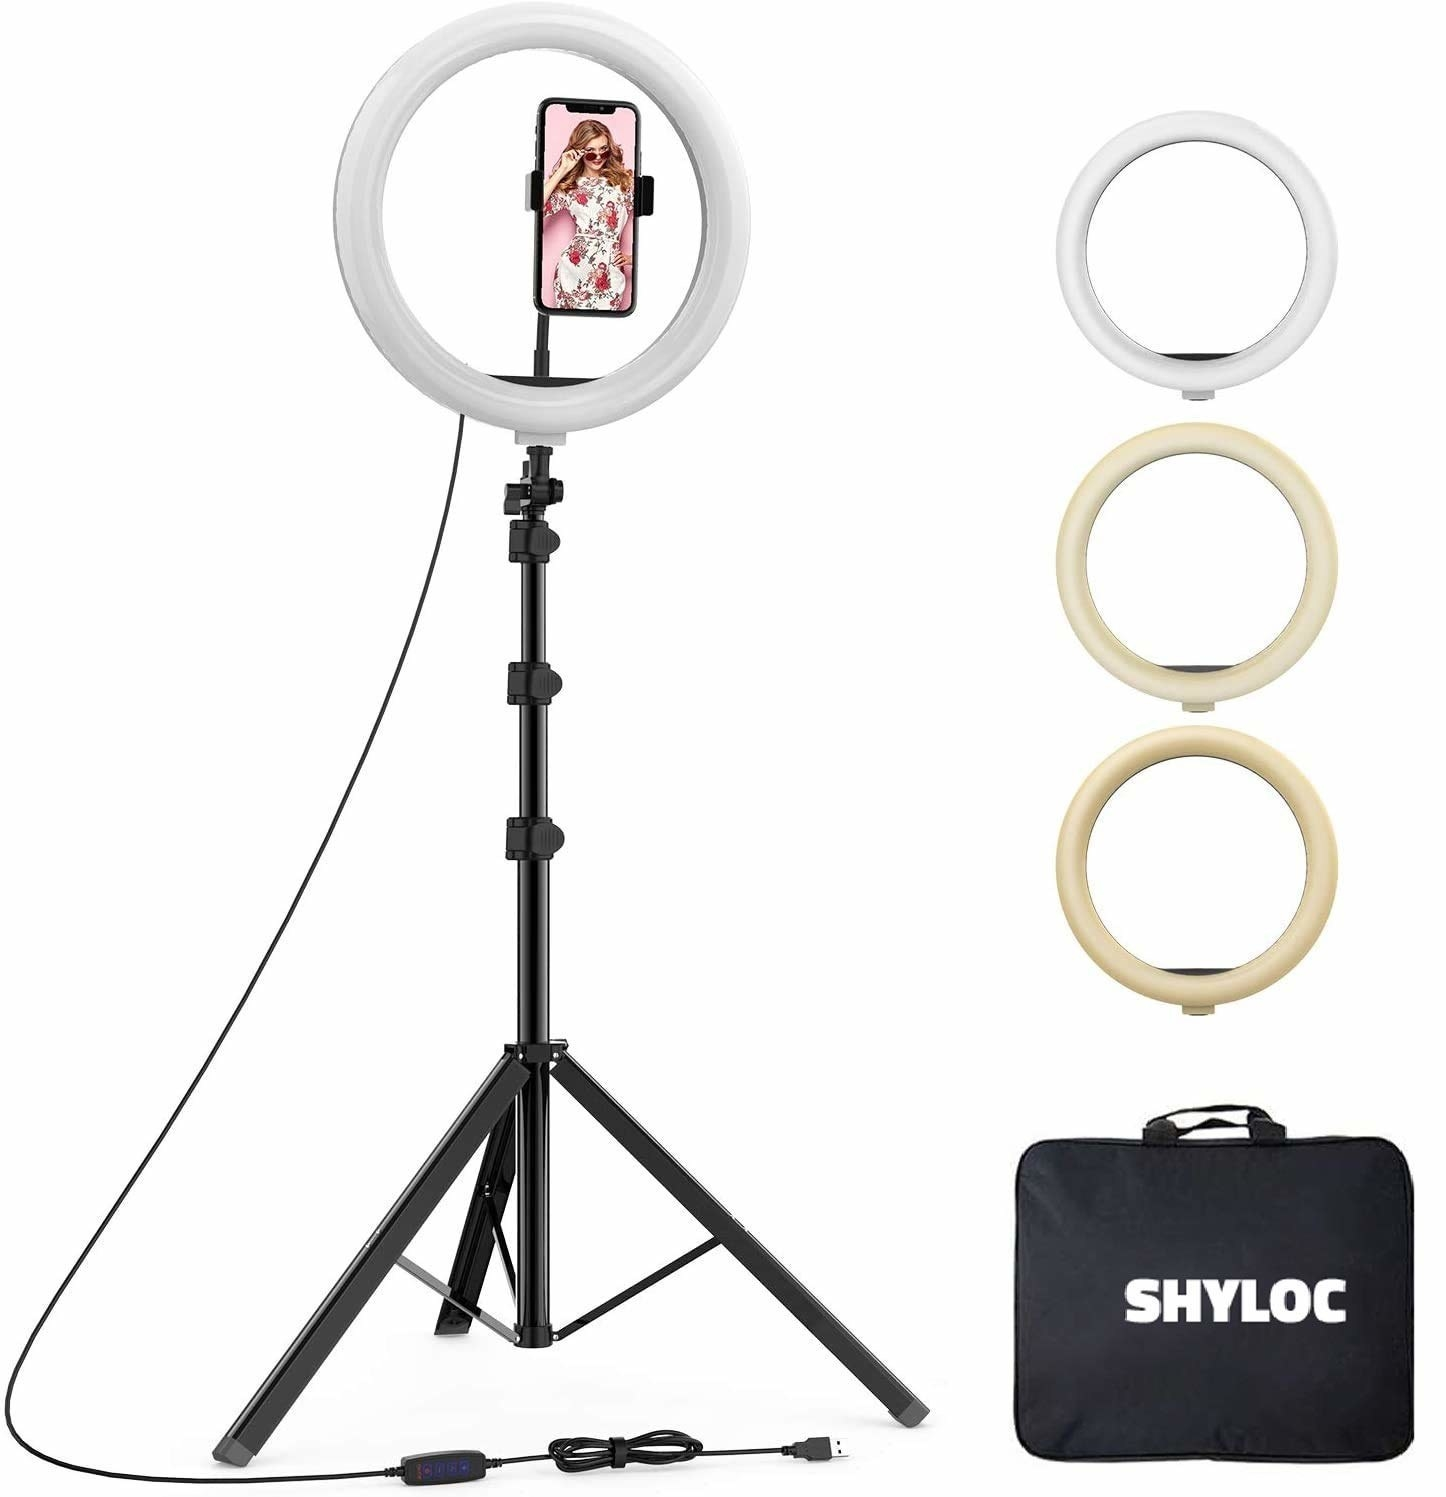 The ring light with a tripod and mobile holder, and three different light settings.